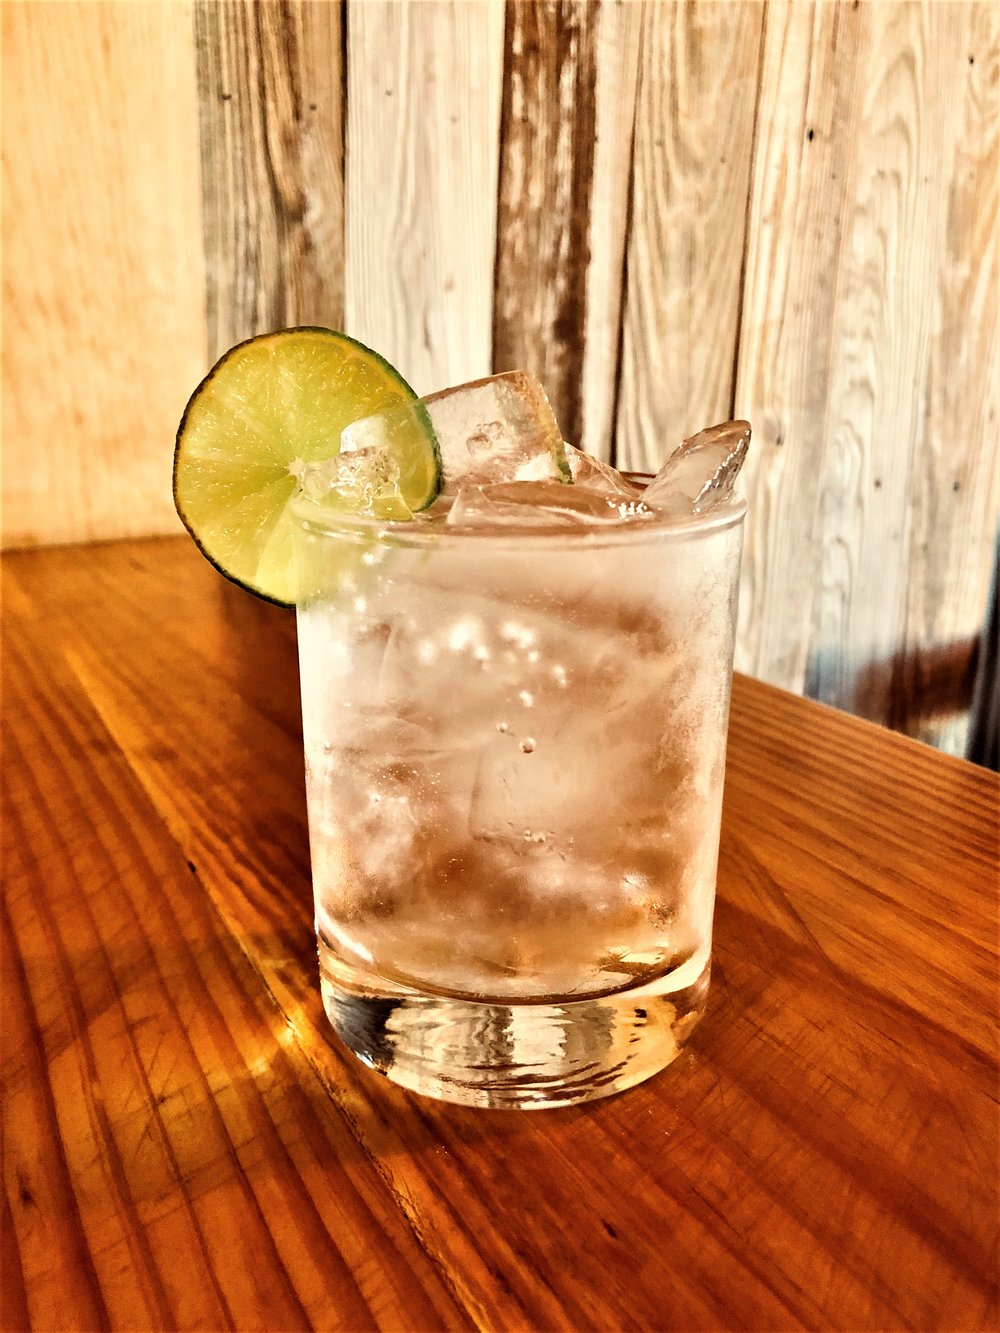 WRV CLUB  - On ice, add 1 or 2 shots of WILD RAG VODKA or WILD RAG MESQUITE BEAN VODKA, fill with Club Soda.  Add a twist of lime.  Garnish with key lime slice.